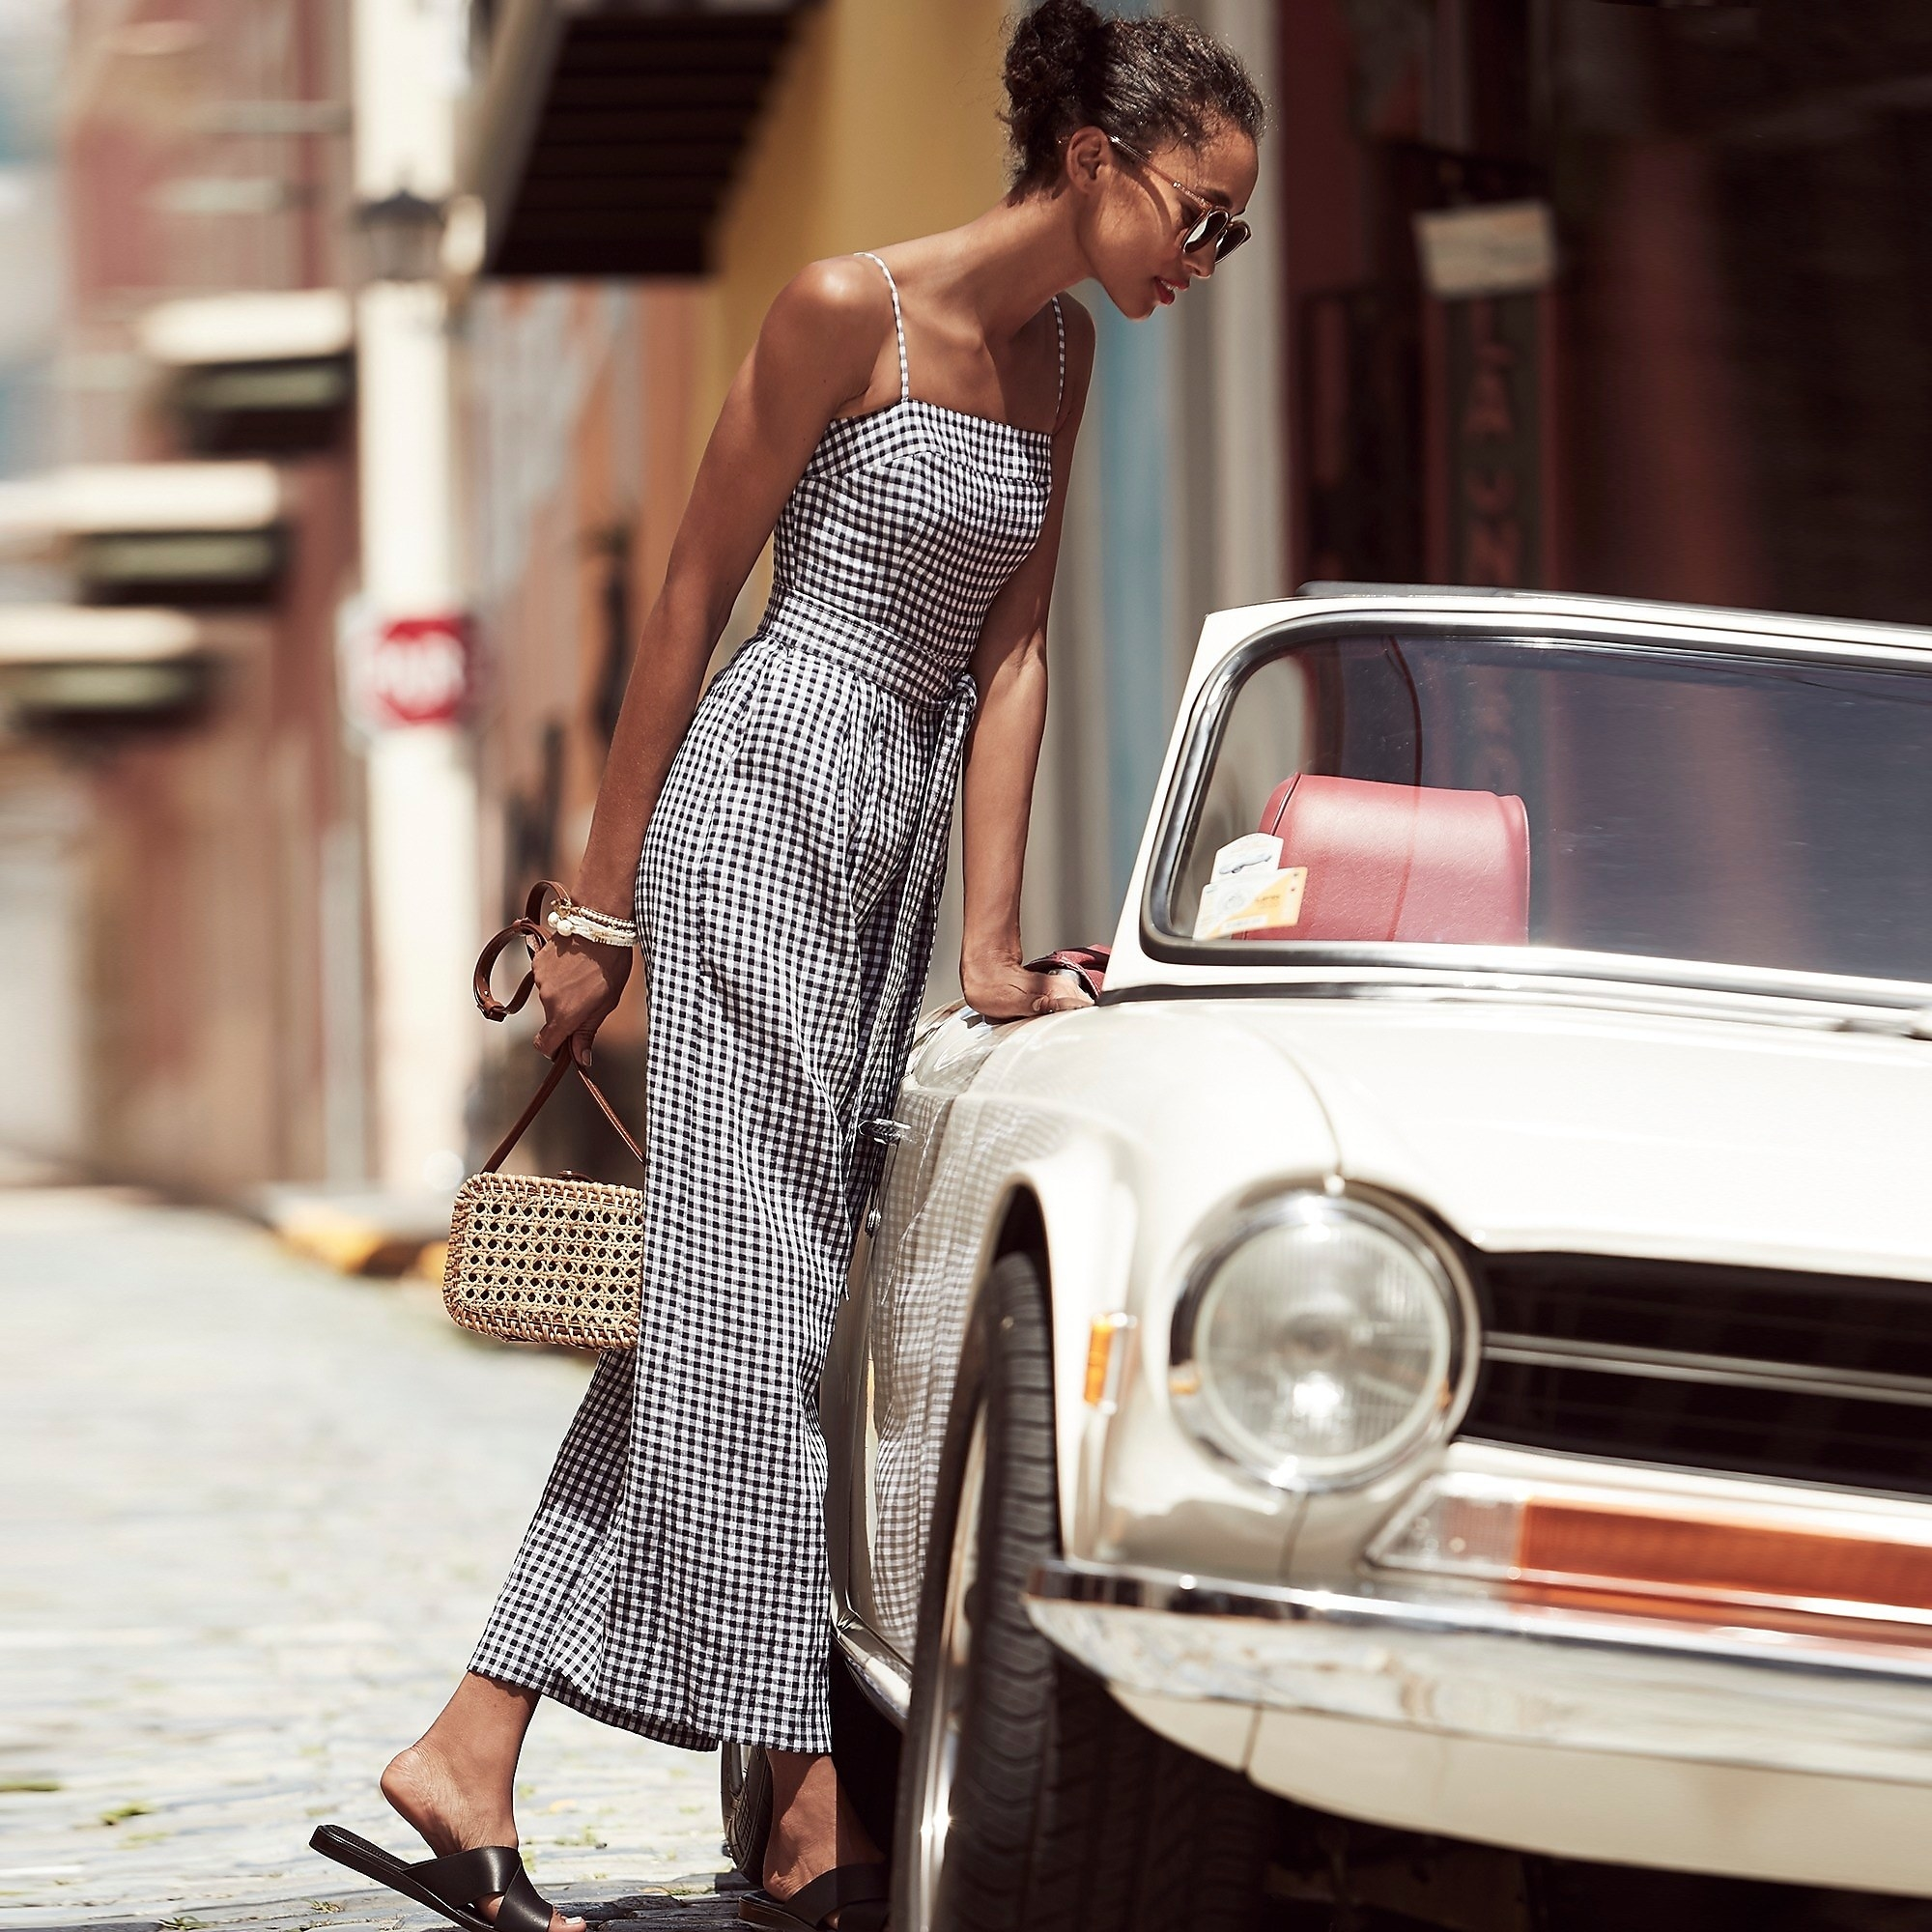 model in black and white gingham jumpsuit with long pants, spaghetti straps, and a high waist